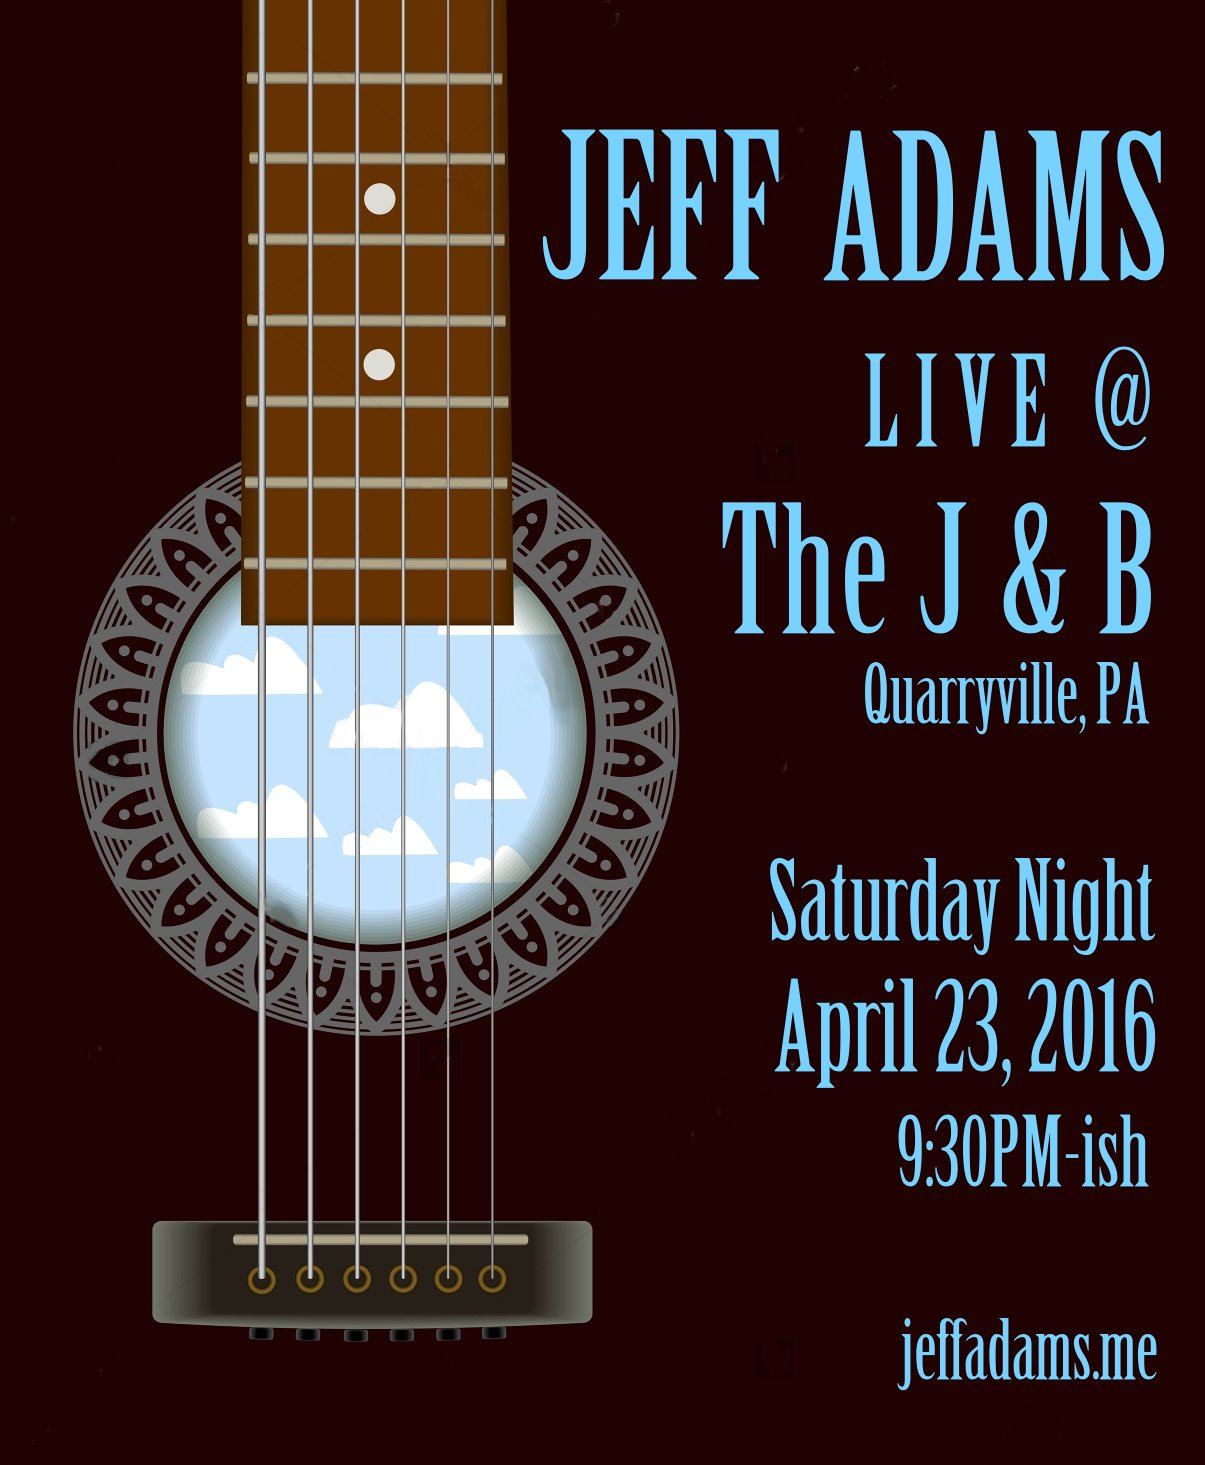 Jeff Adams @ The J & B on April 23rd !